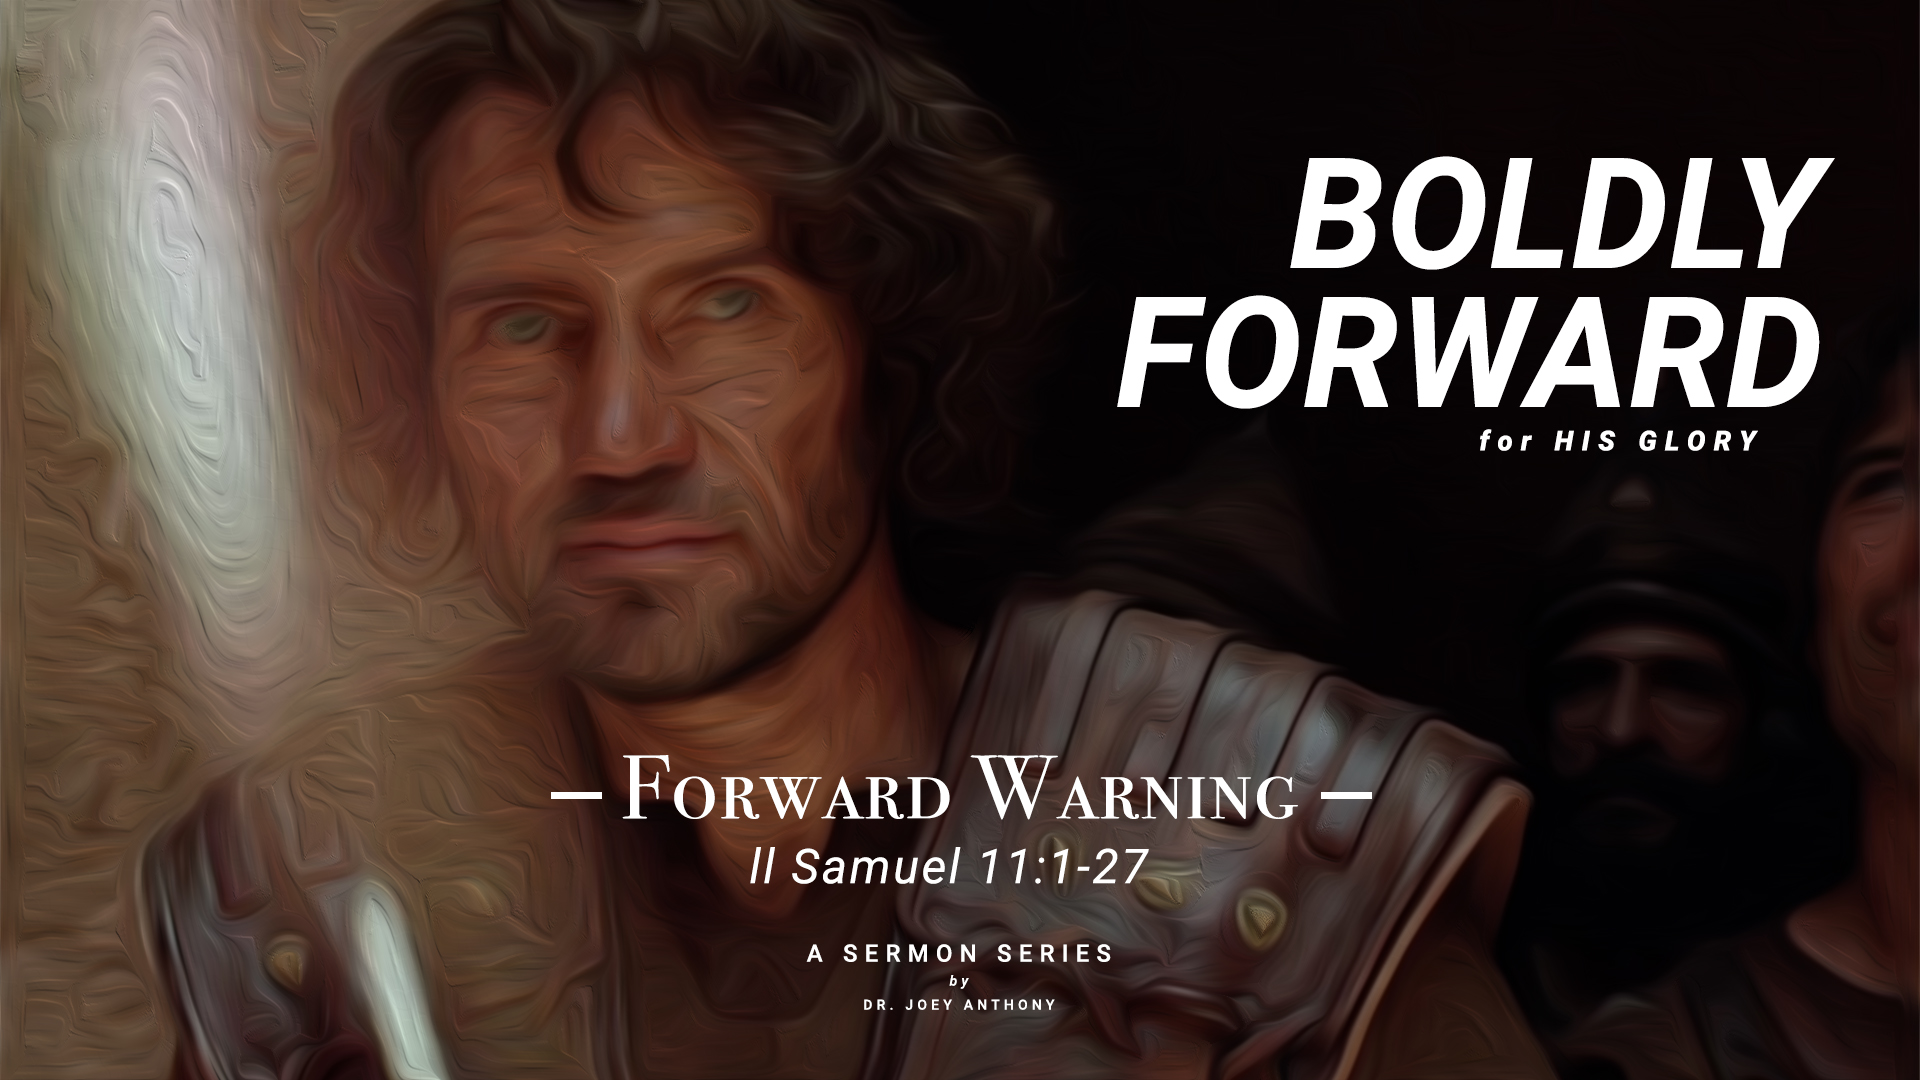 Forward Warning – Boldly Forward For His Glory